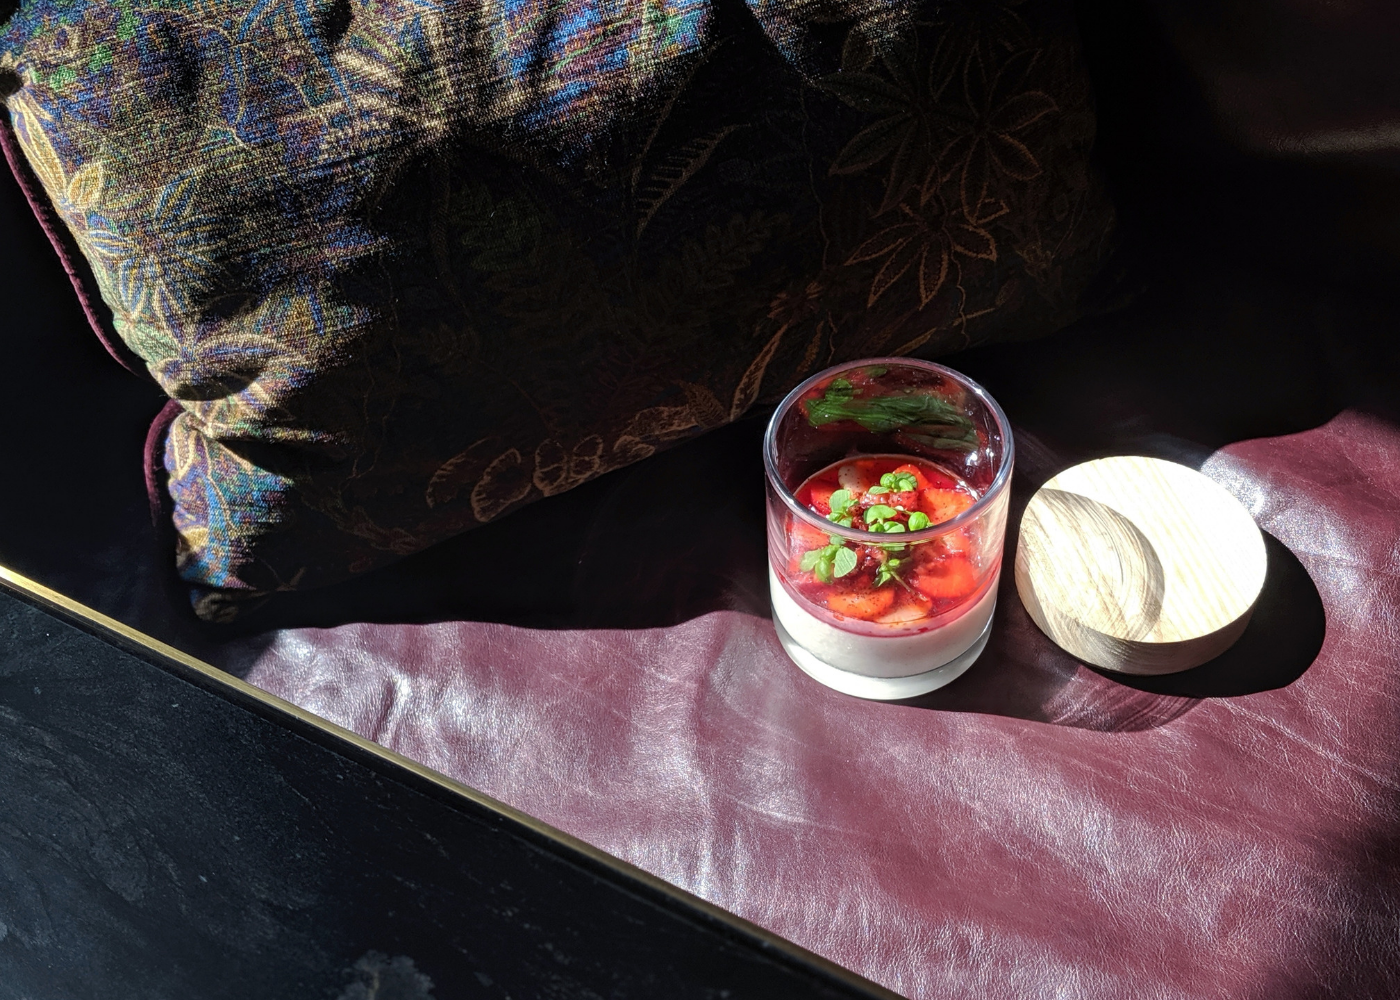 Atlas' panna cotta with strawberry